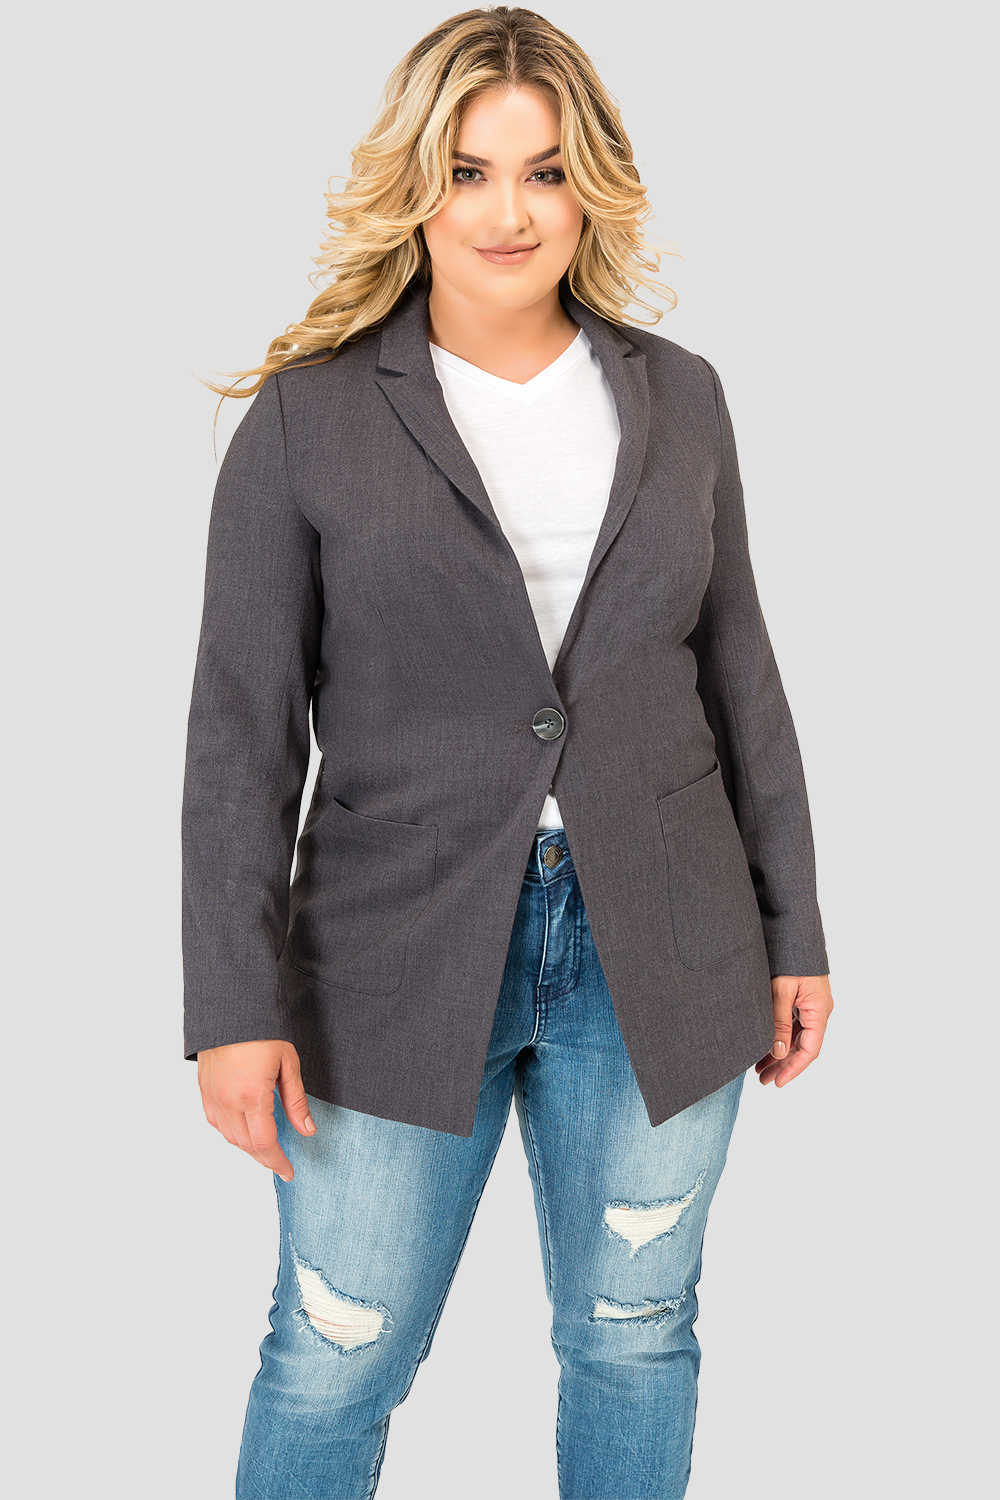 Plus Size Standards & Practices Women's Plaid Gray Boyfriend Blazer